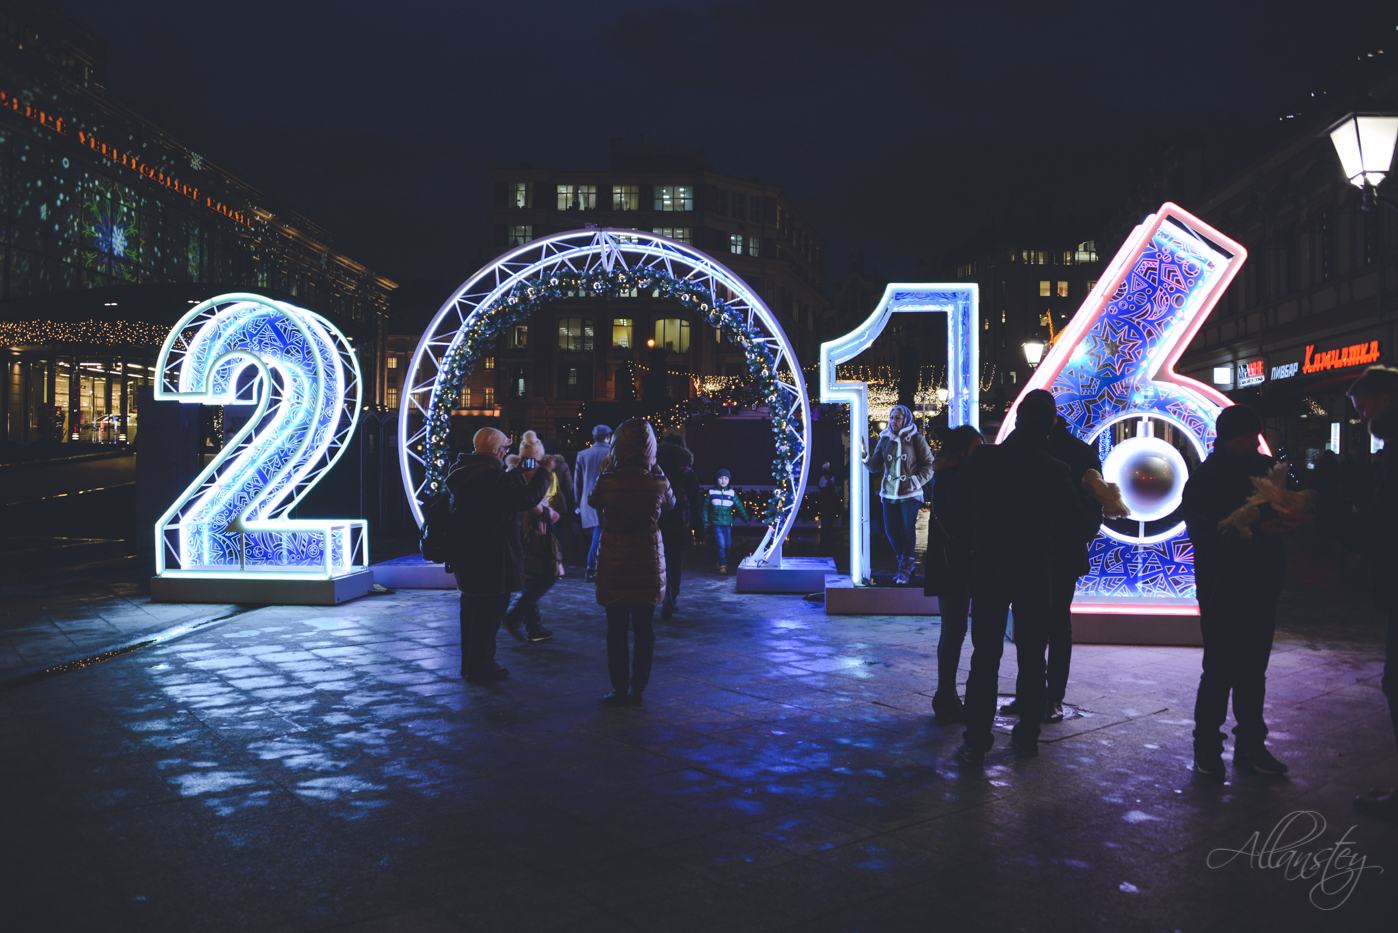 2016 winter holidays decorations in Moscow